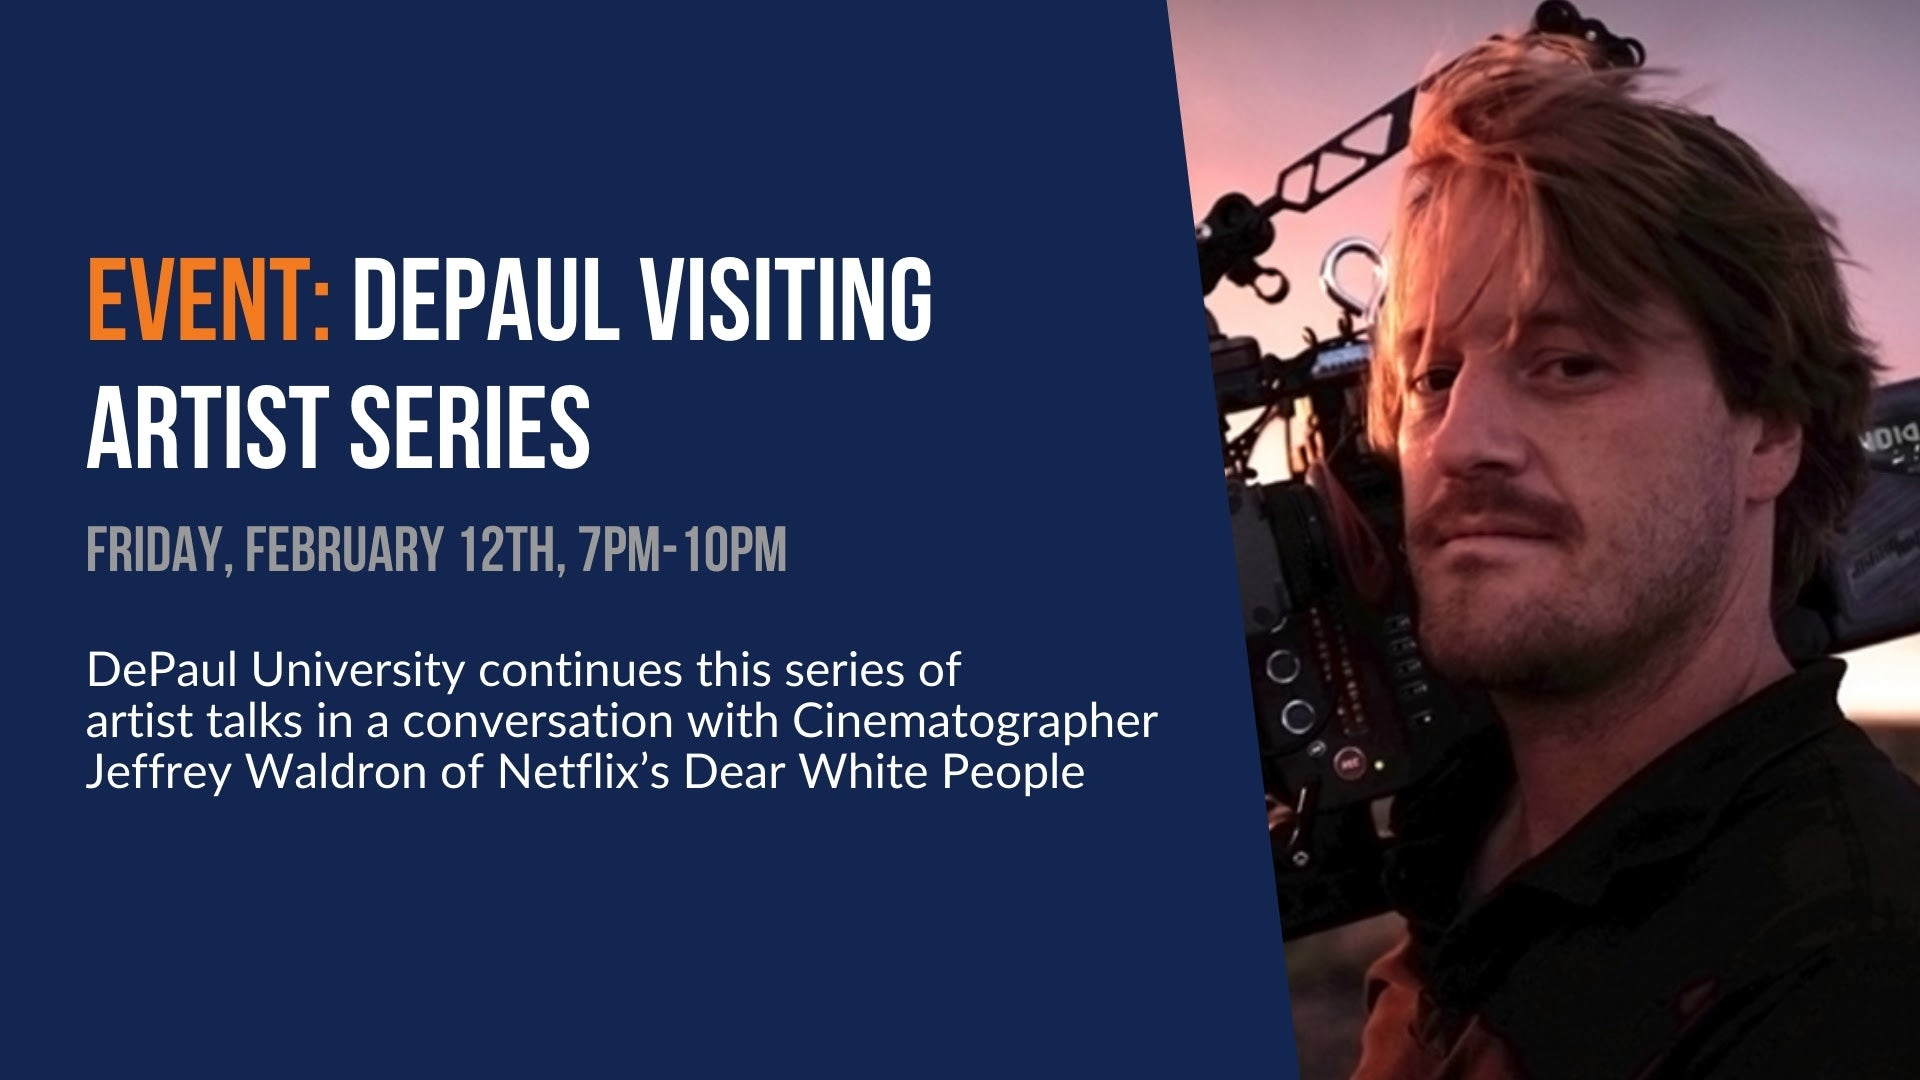 Event: DePaul Visiting Artist Series. Friday, February 12th. 7pm - 10pm. DePaul University continues this series of artist talks in a conversation with Cinematographer Jeffrey Waldron of Netflix's Dear White People